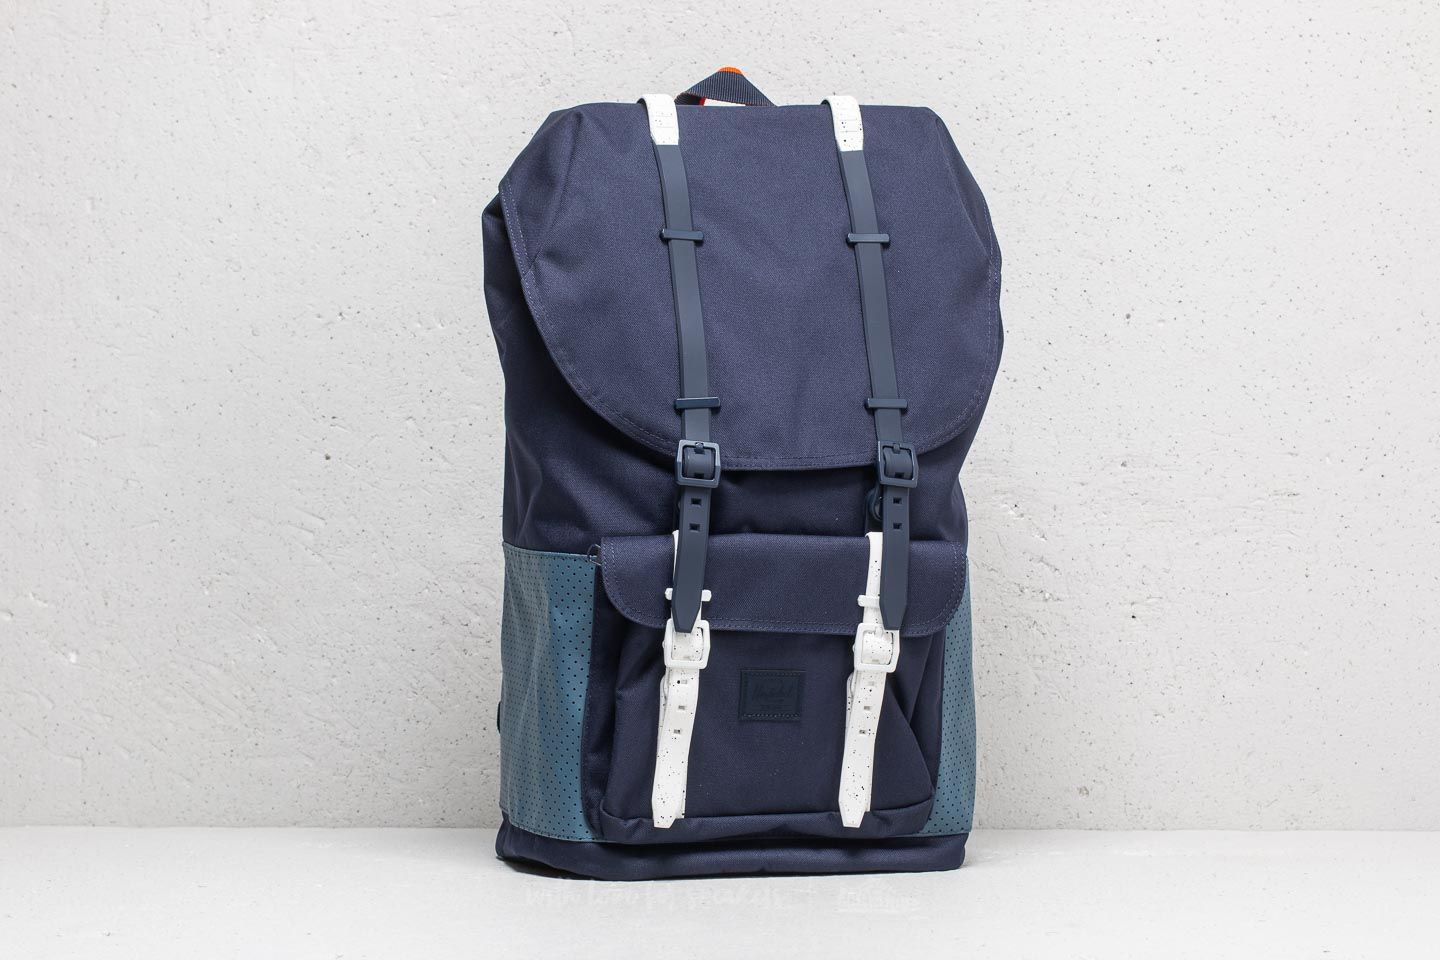 f1d5a7446ad Herschel Supply Co. Little America Backpack Peacoat  Navy ...